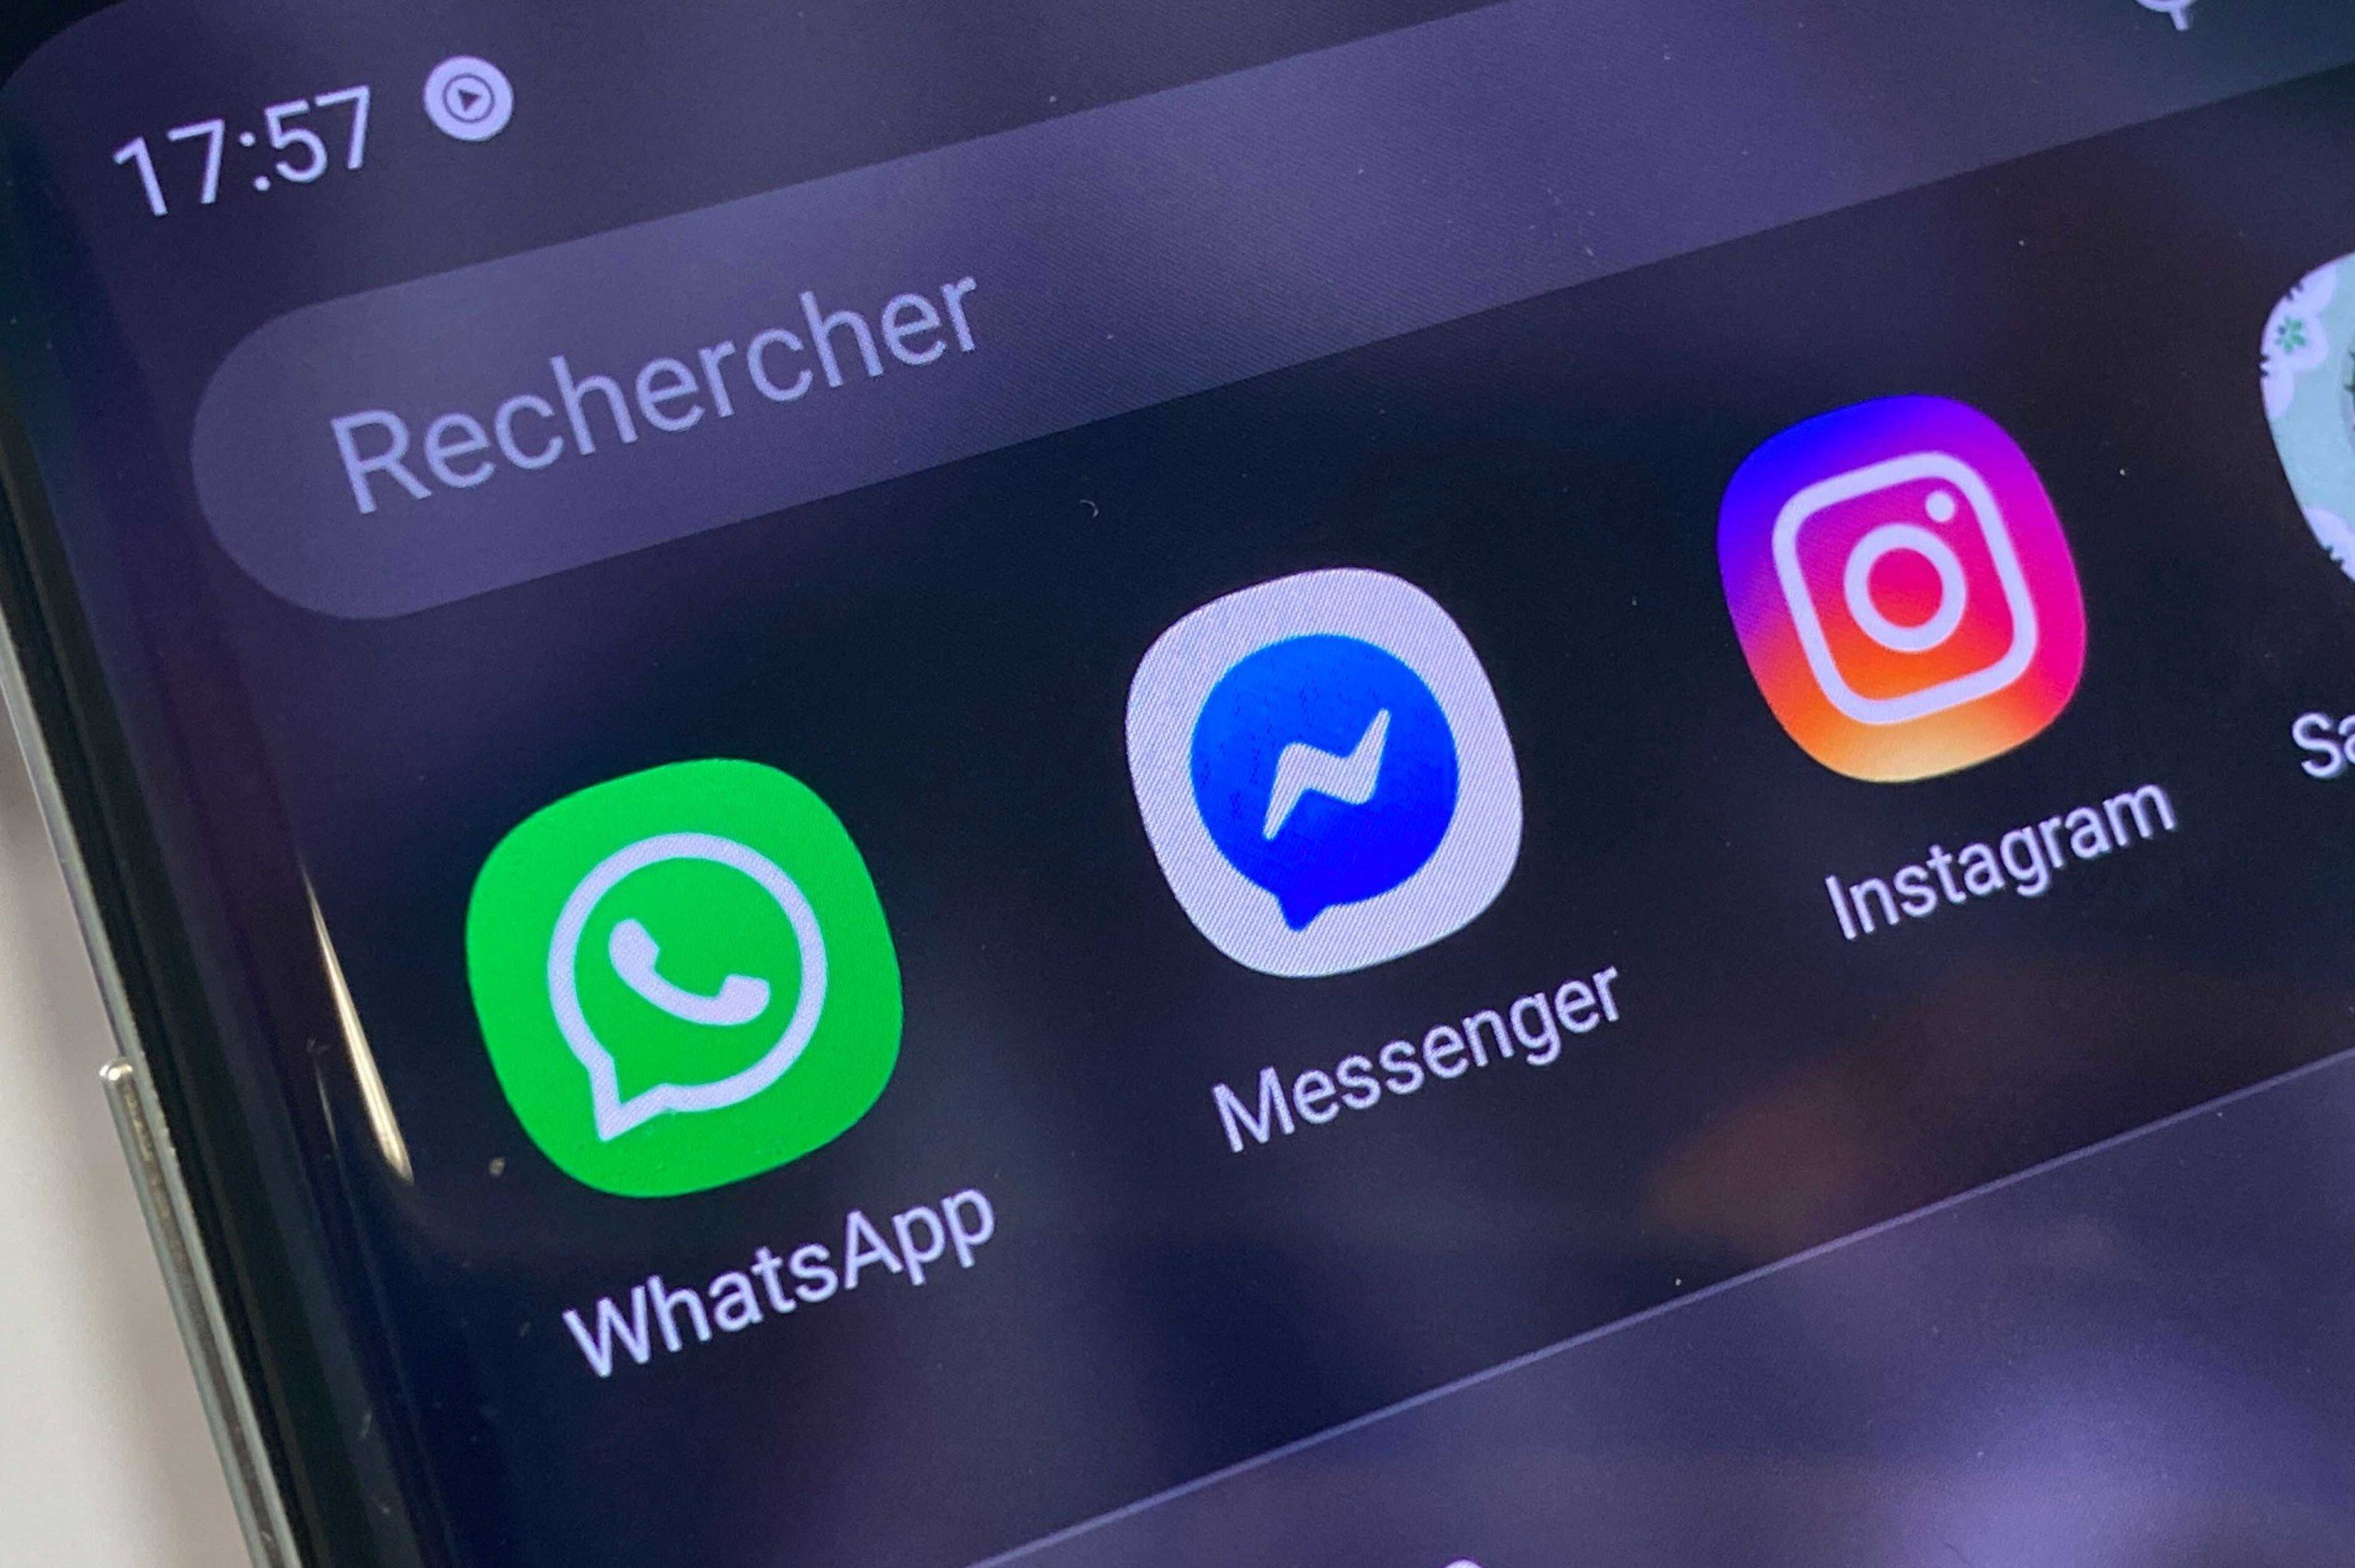 Should you terminate WhatsApp messages to protect your privacy?